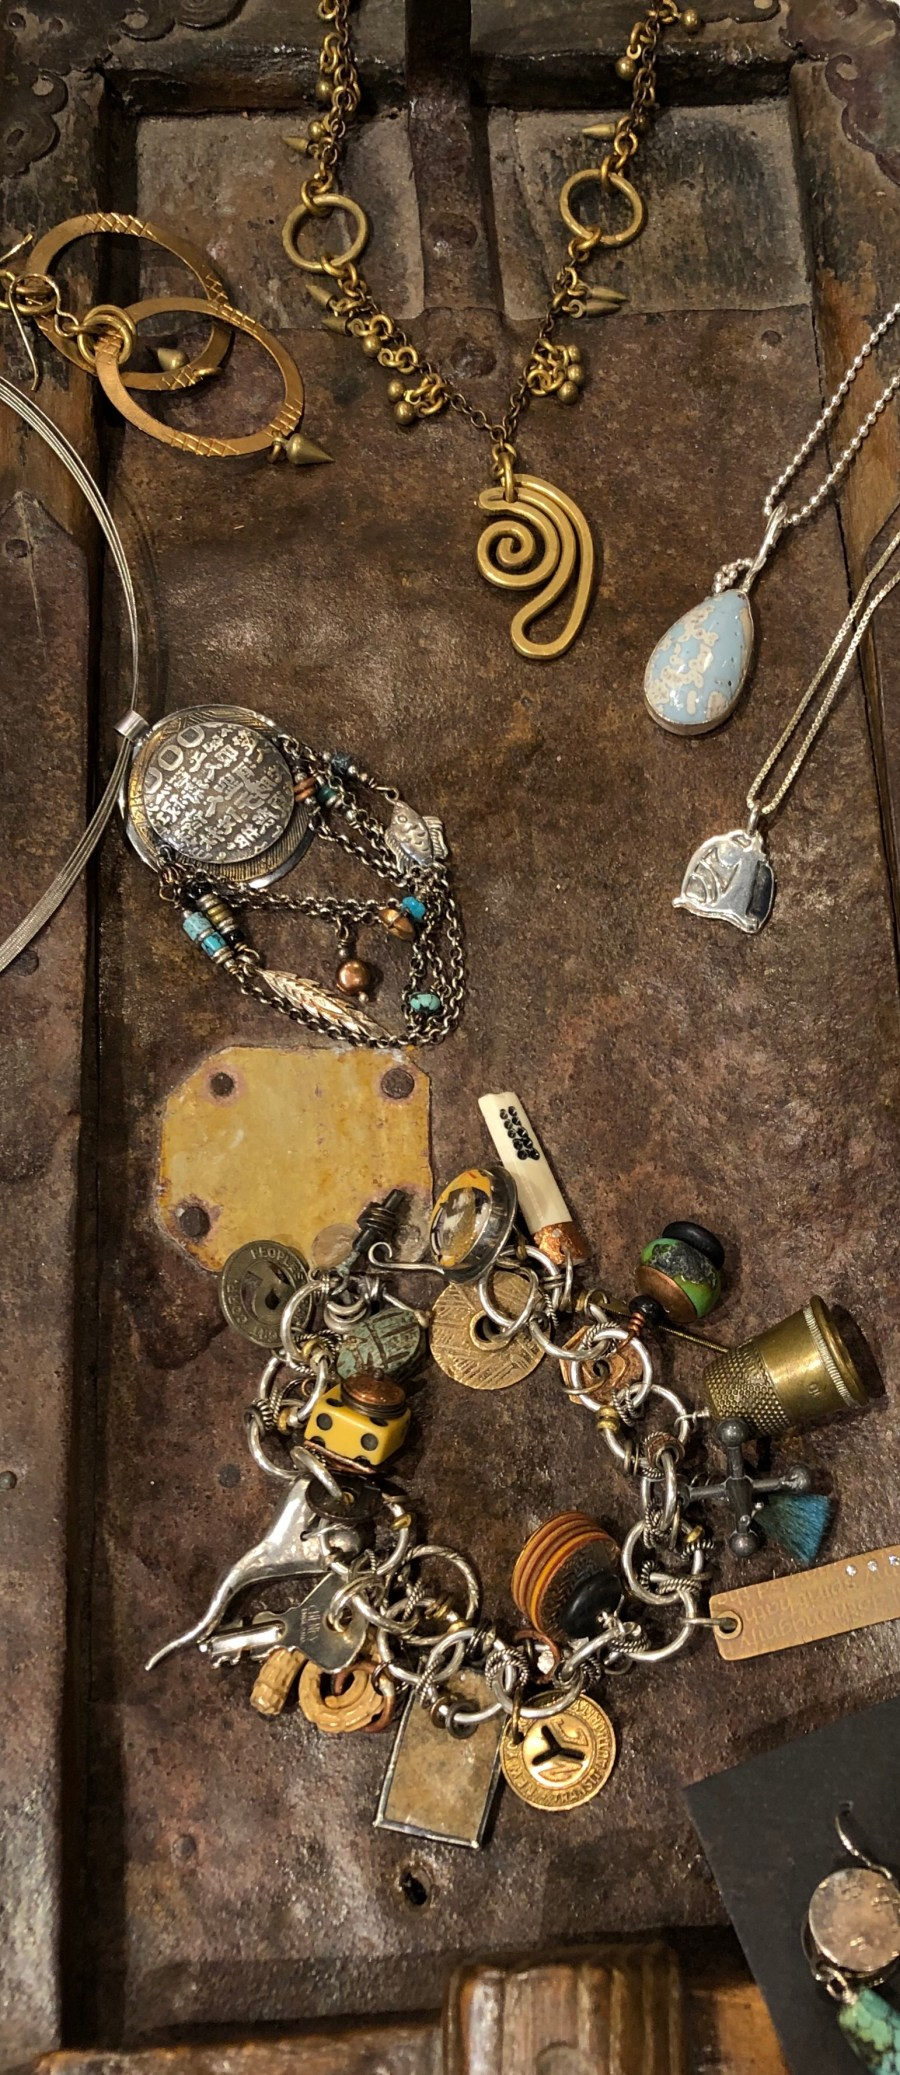 Hand-fabricated jewelry by Anne Morgan, Julie Sanford, and Lochlin Smith